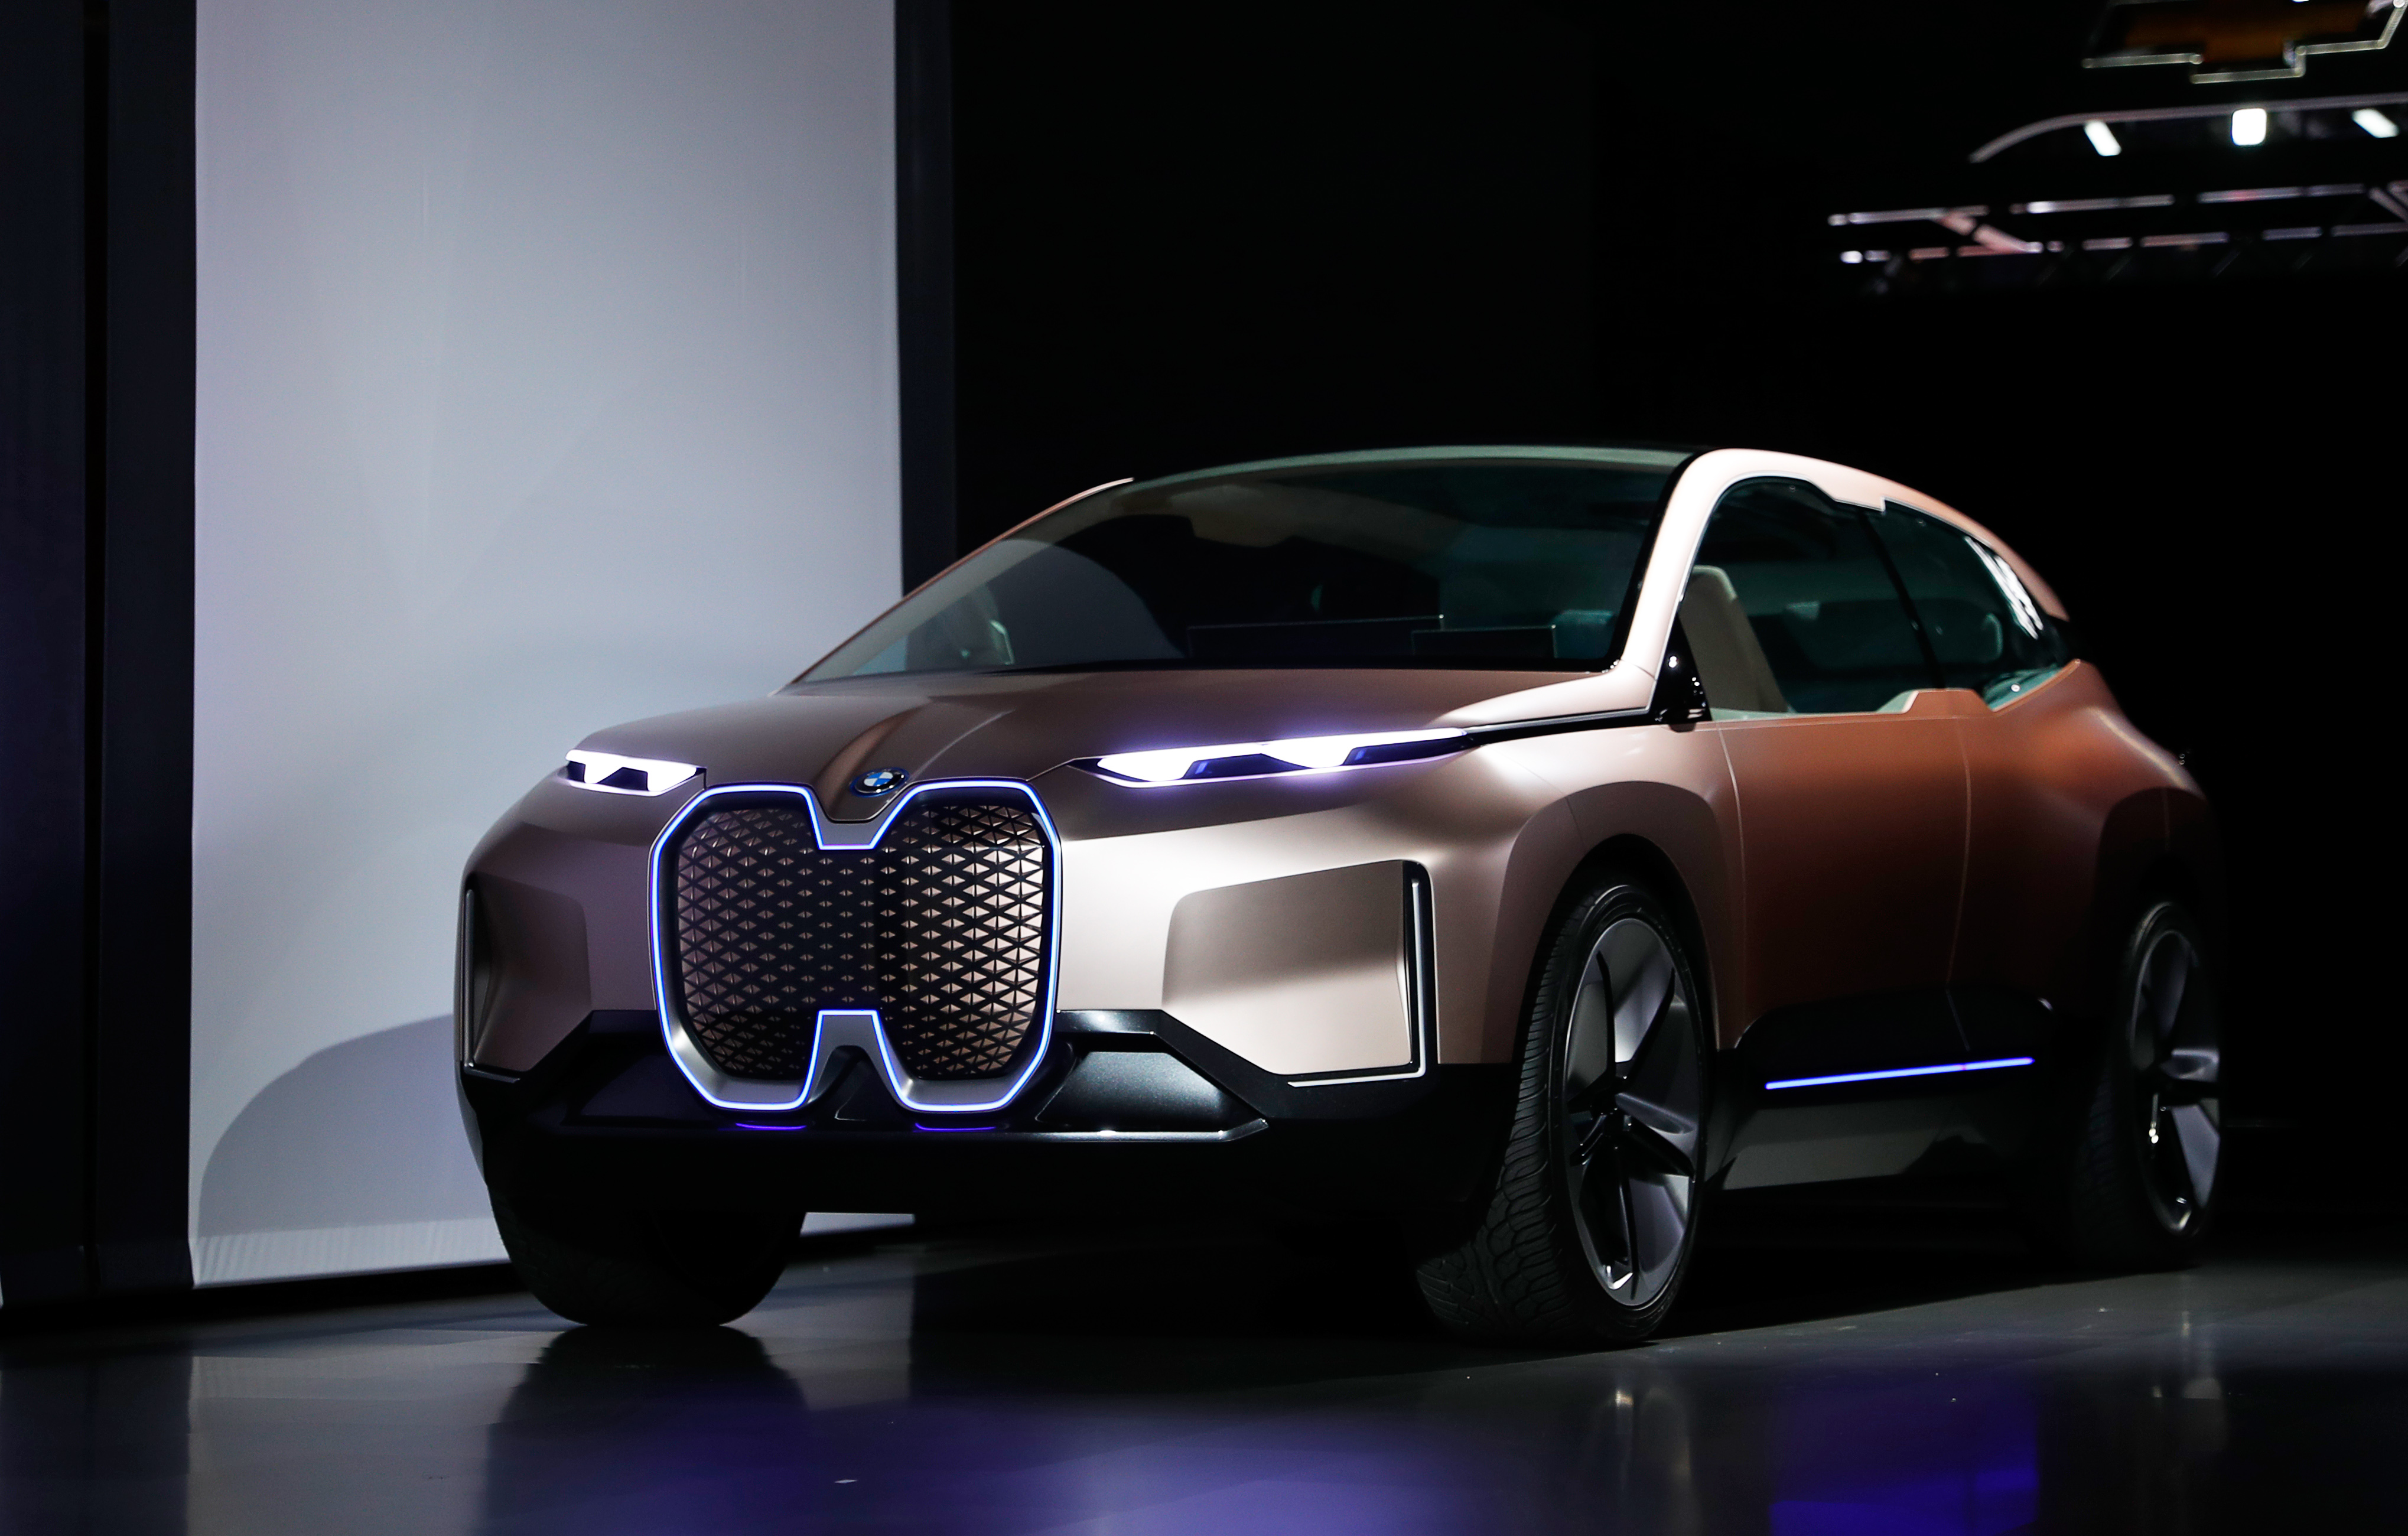 The BMW iNEXT electric autonomous concept car is introduced during a BMW press conference at the Los Angeles Auto Show in Los Angeles